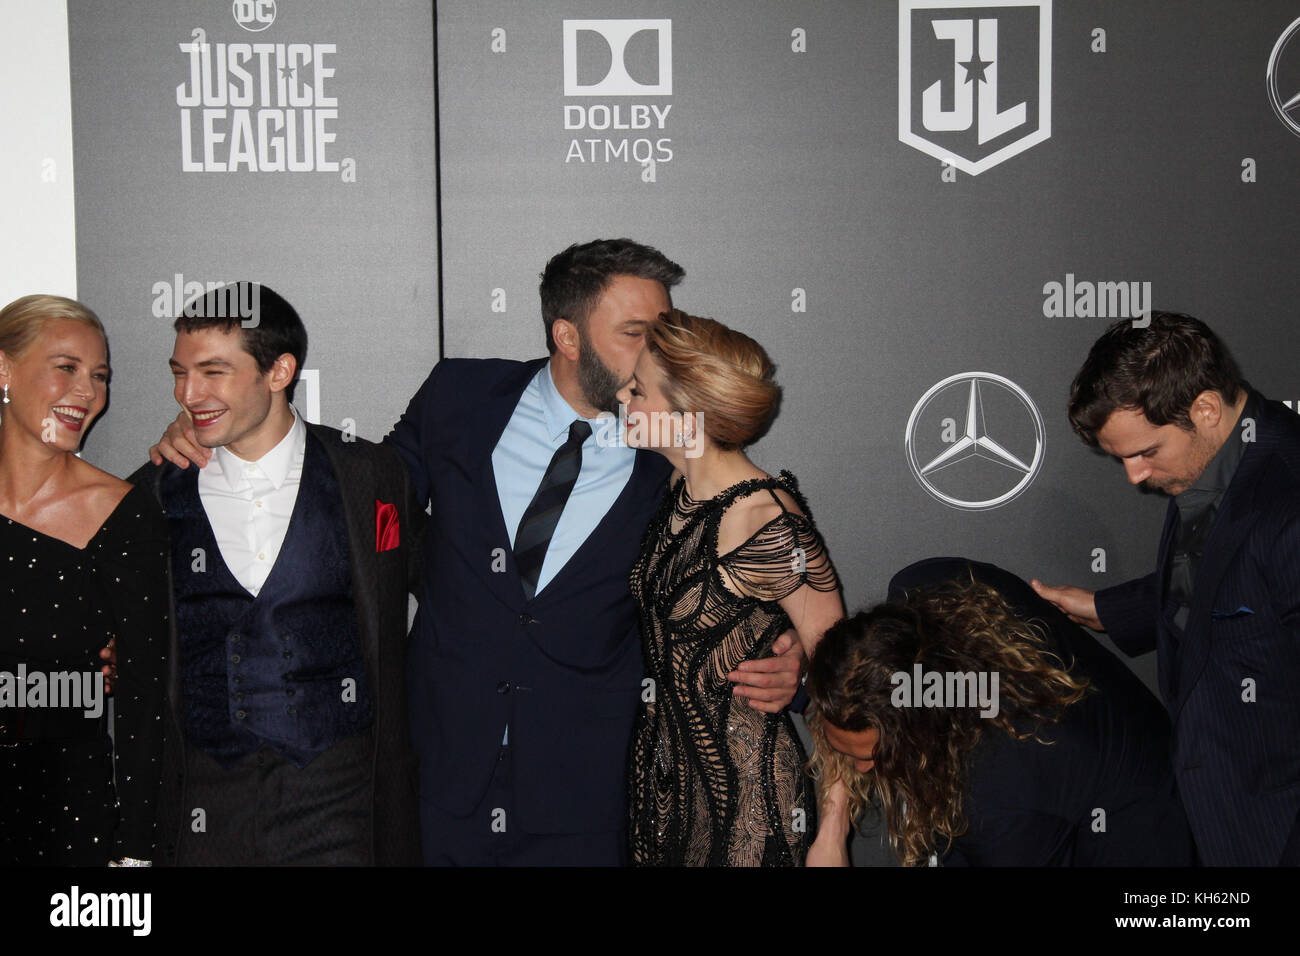 11/13/2017 The World Premiere of 'Justice League' held at The Dolby Theater in Hollywood, CA  Photo: Cronos/Hollywood - Stock Image